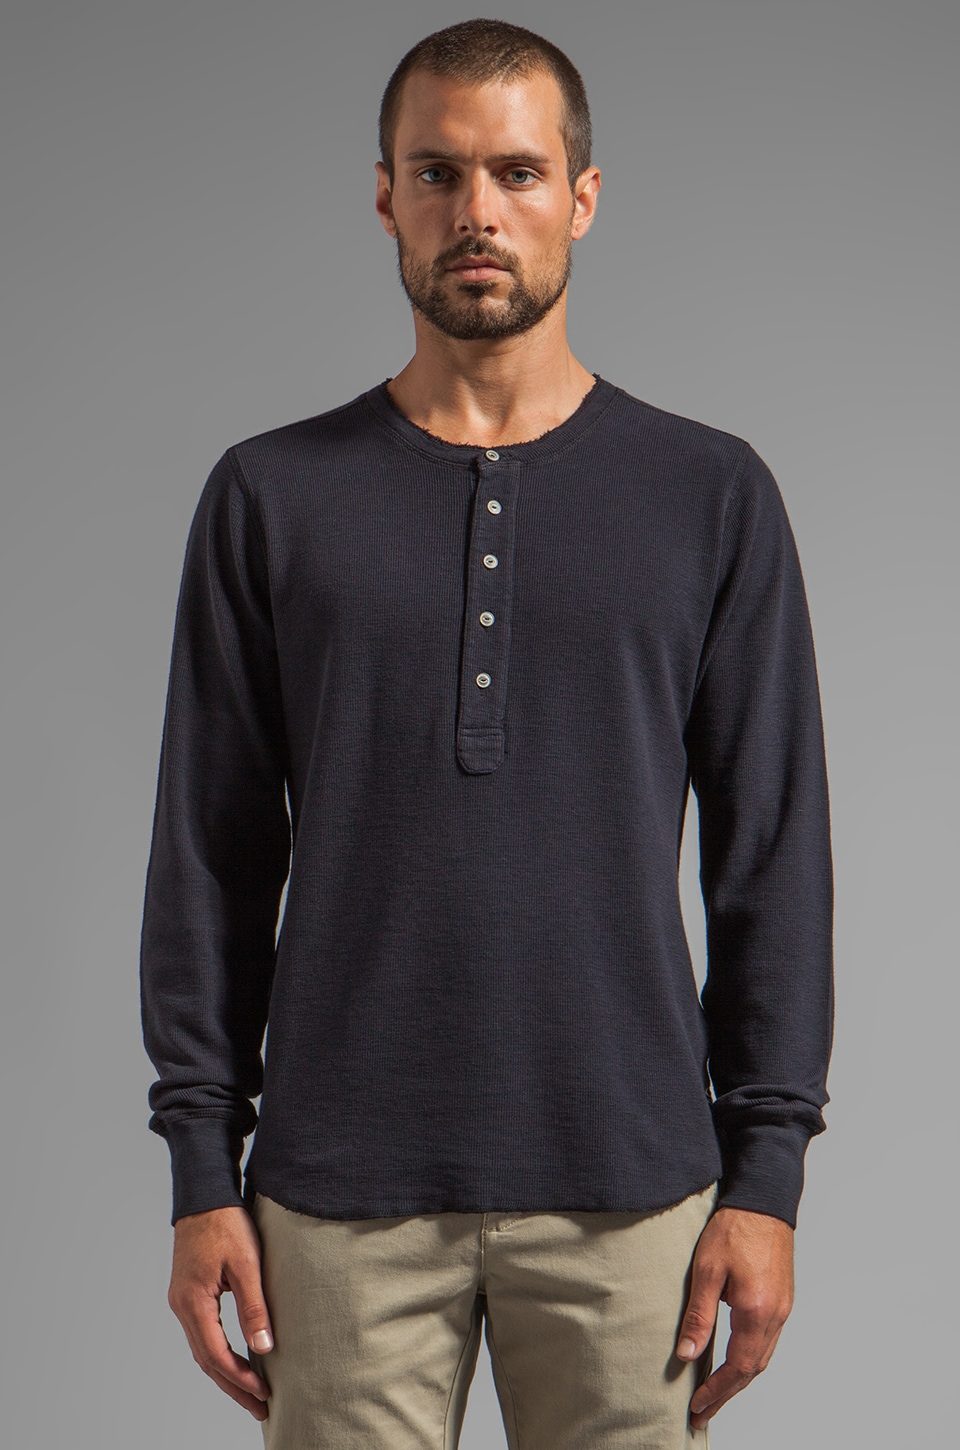 AG Adriano Goldschmied Raw Edge Henley in Navy